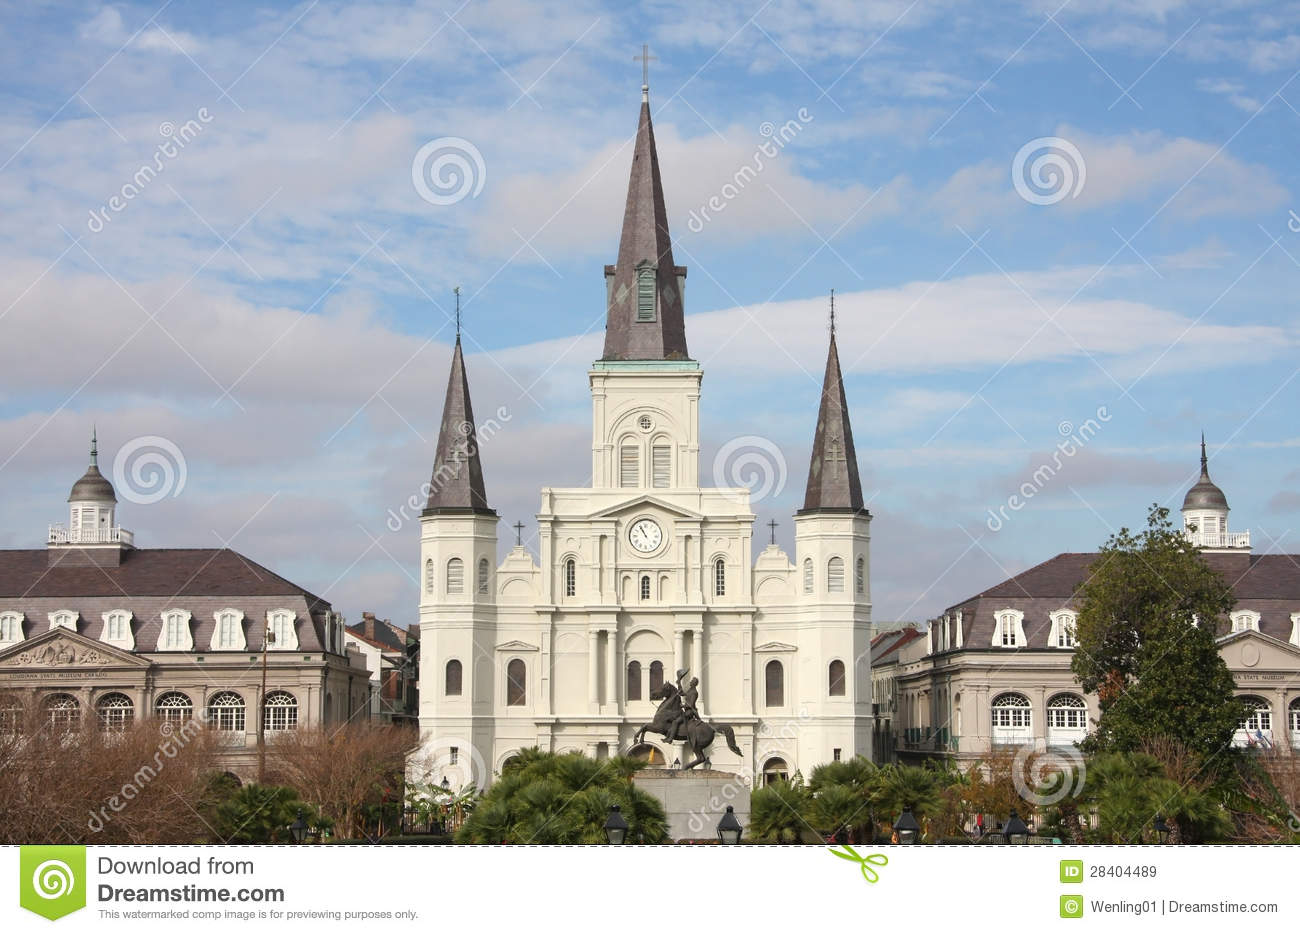 historic building in new orleans stock image image of orleans